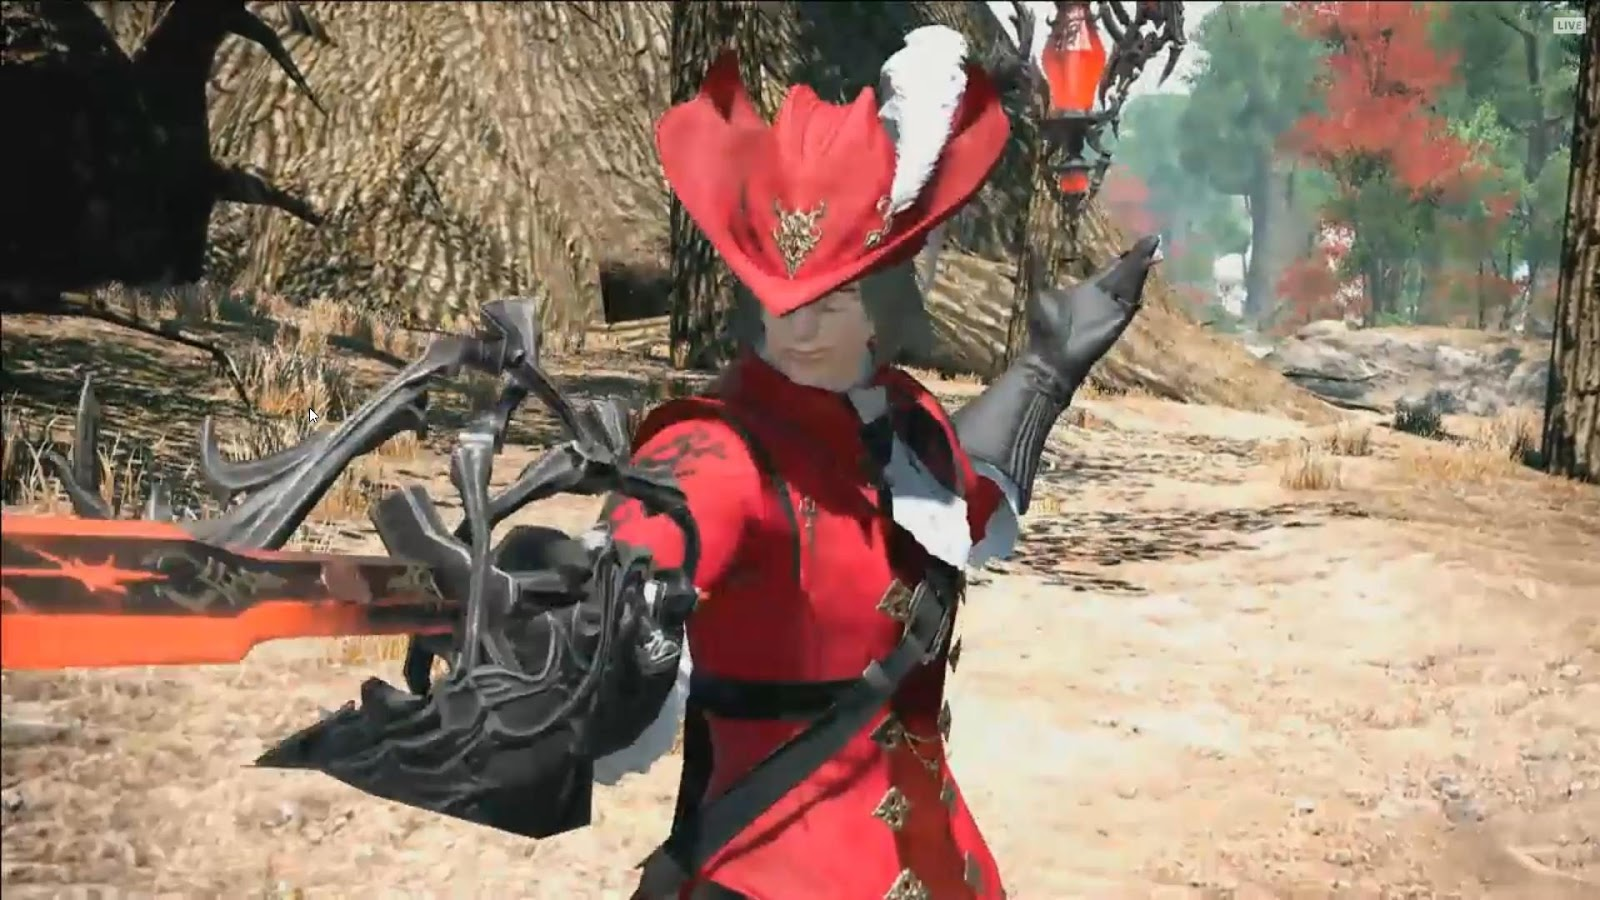 Final Fantasy Xiv Stormblood Will Add Red Mage Swimming